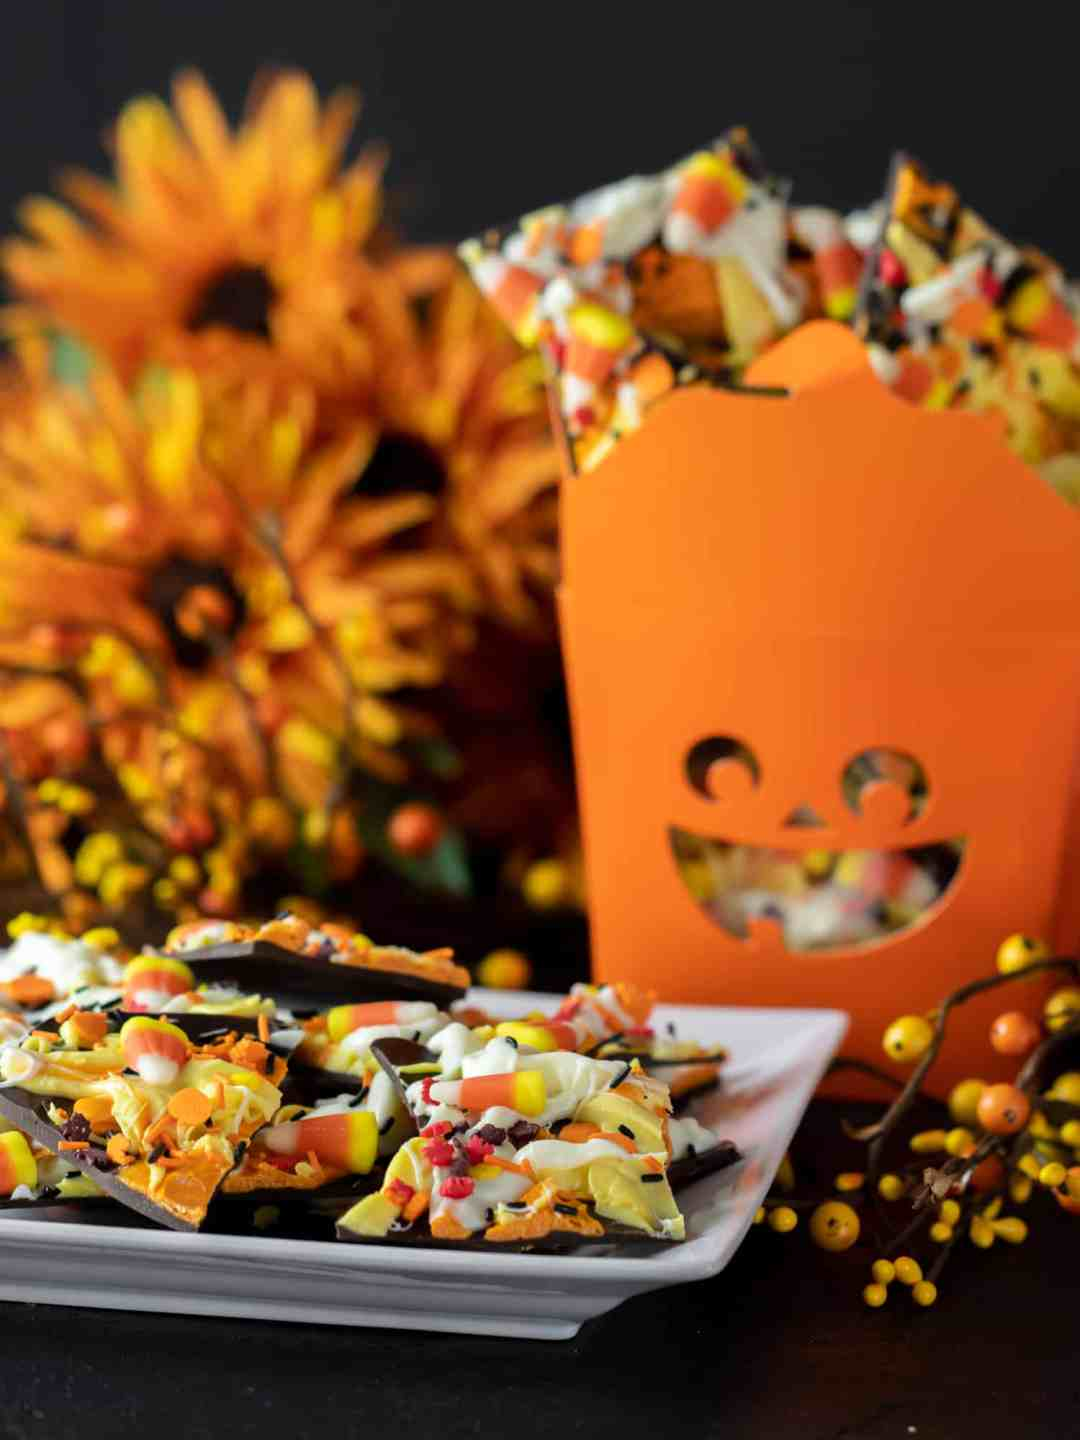 Plate of candy bark and a jack o lantern gift box filled with chocolate bark